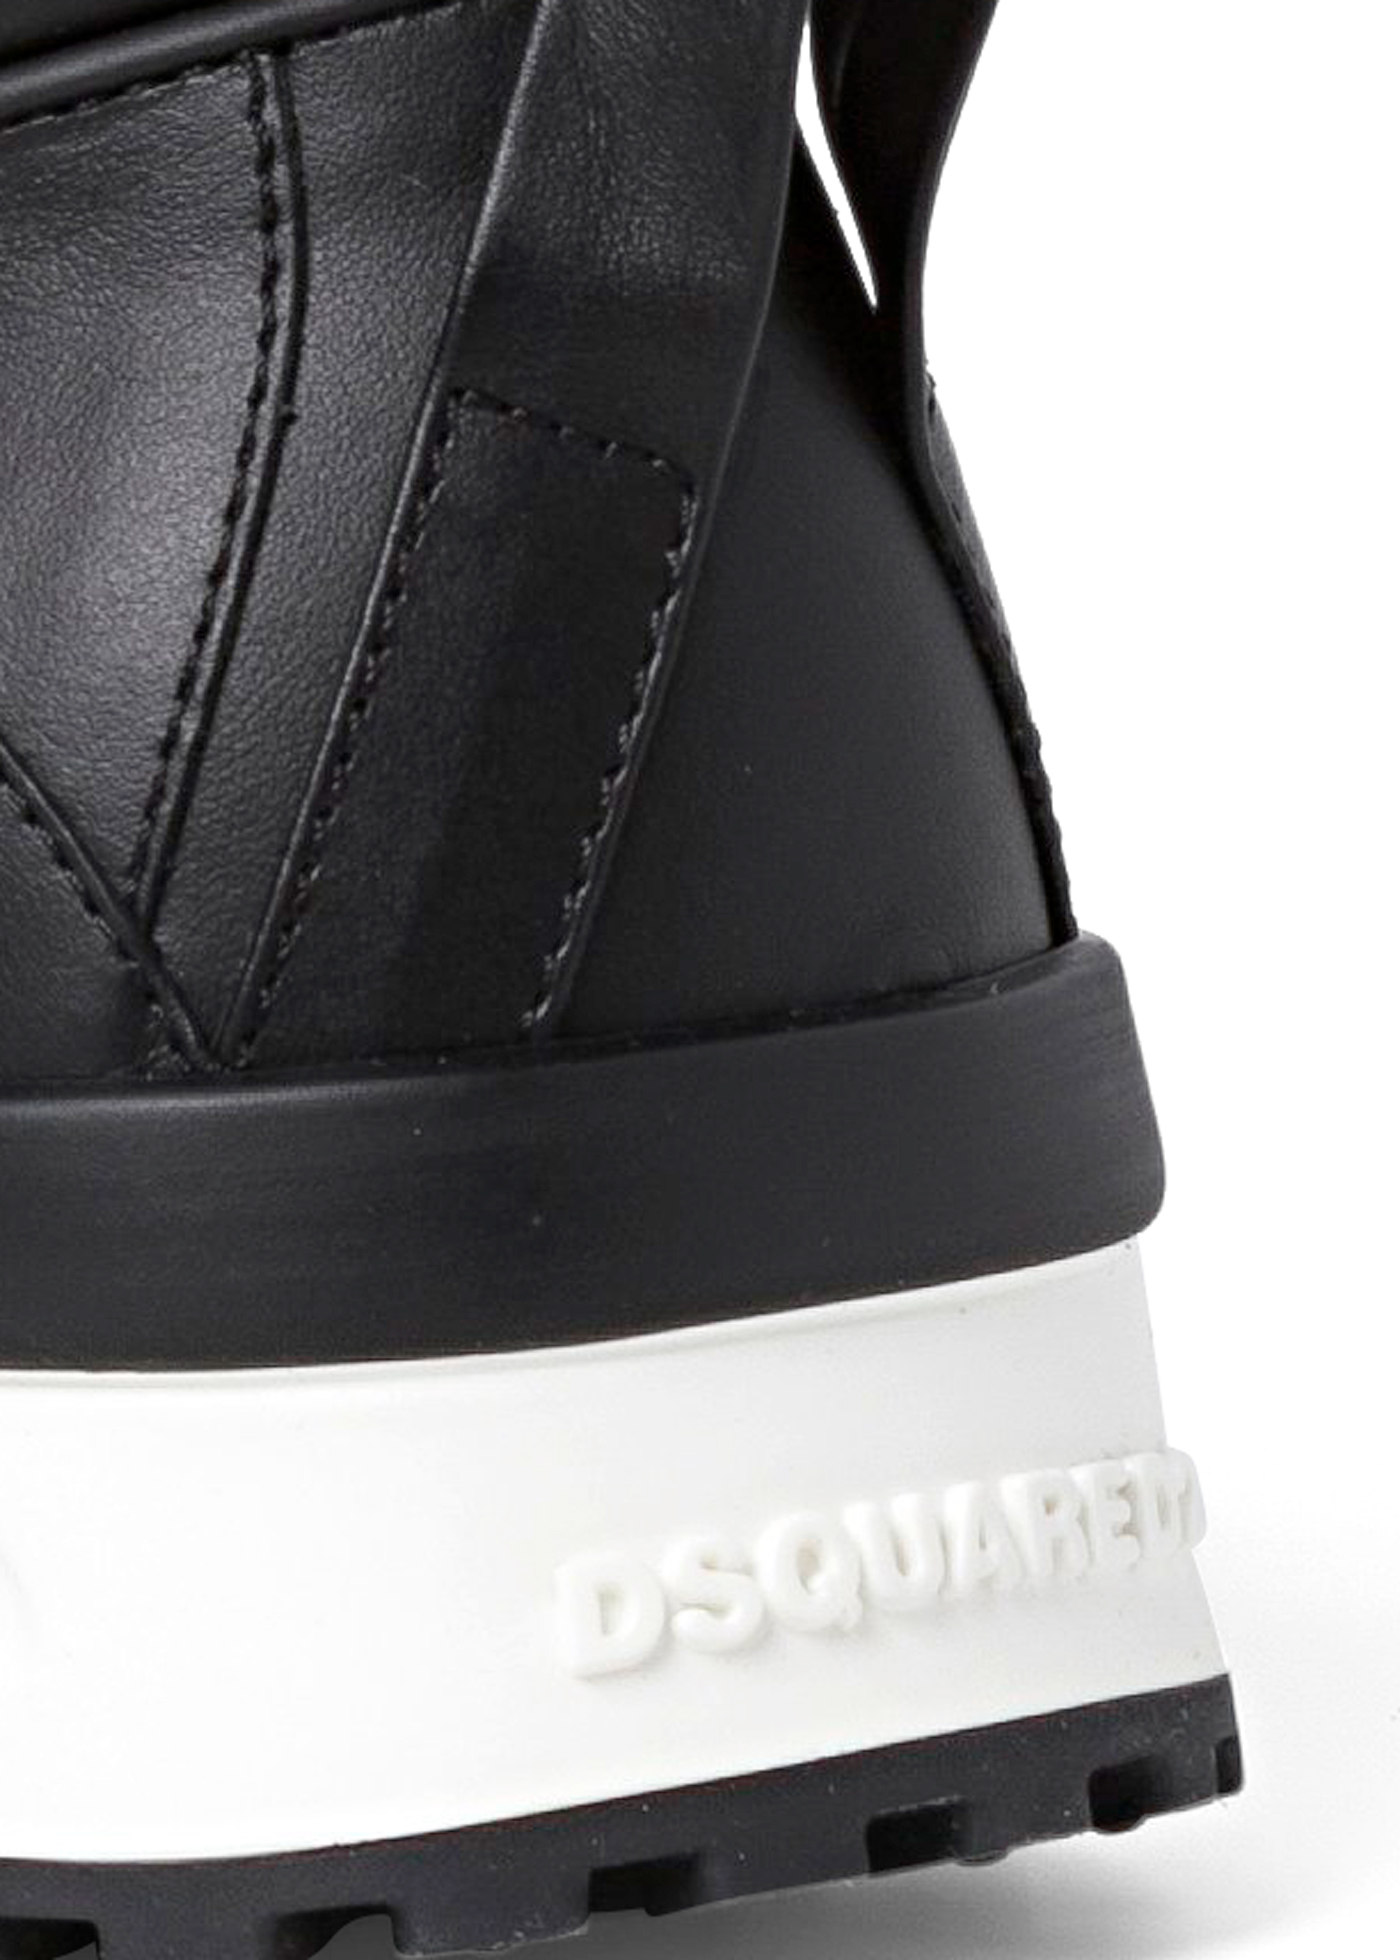 LEGEND W/ WAVE SNEAKERS image number 3